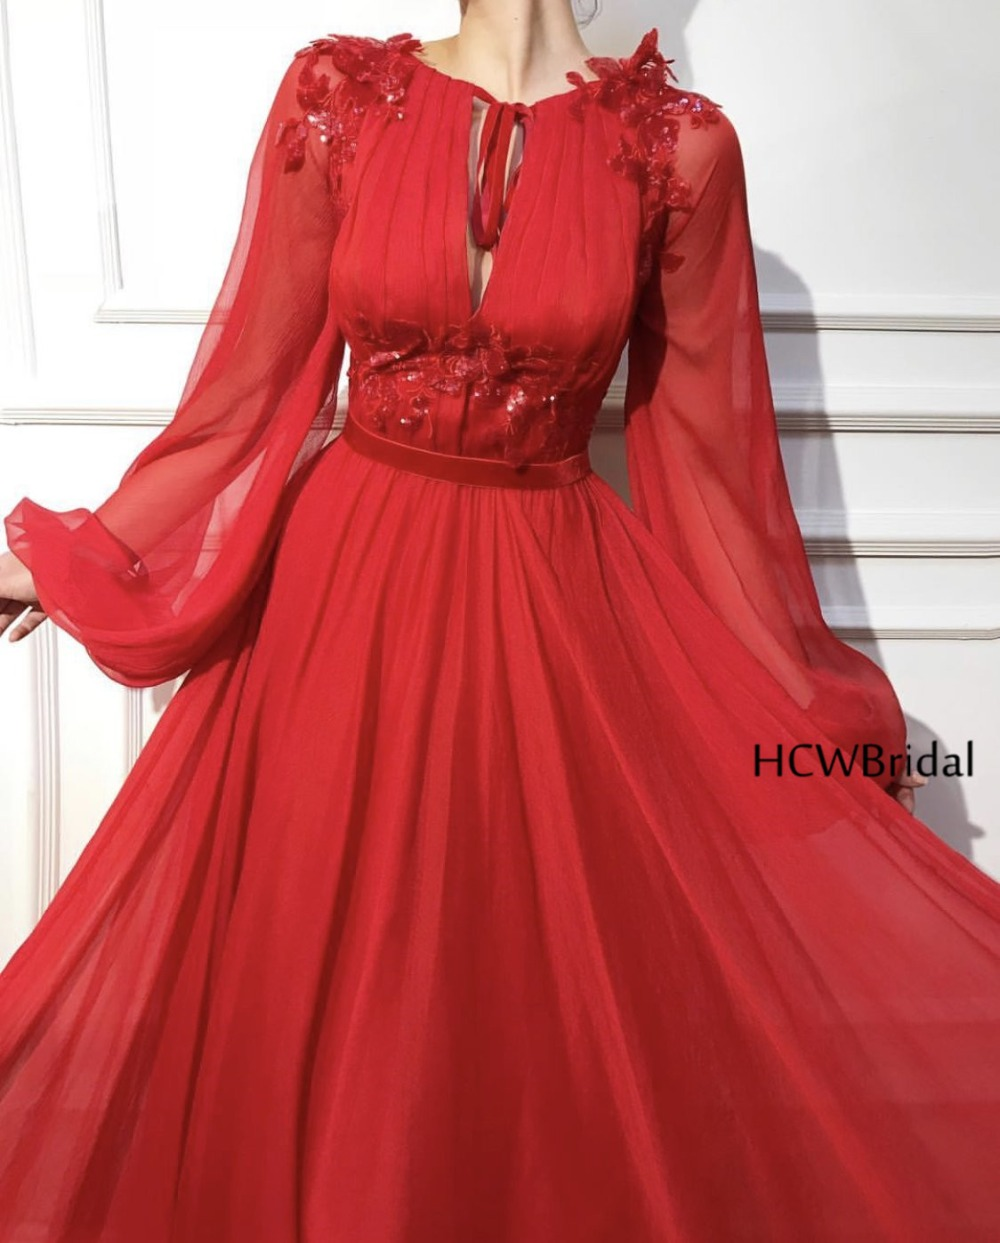 2019 New Arabic   Evening     Dress   Long Sleeve Red Chiffon A Line Appliques Formal Occasion   Dresses   Custom Made Wedding Party Gowns